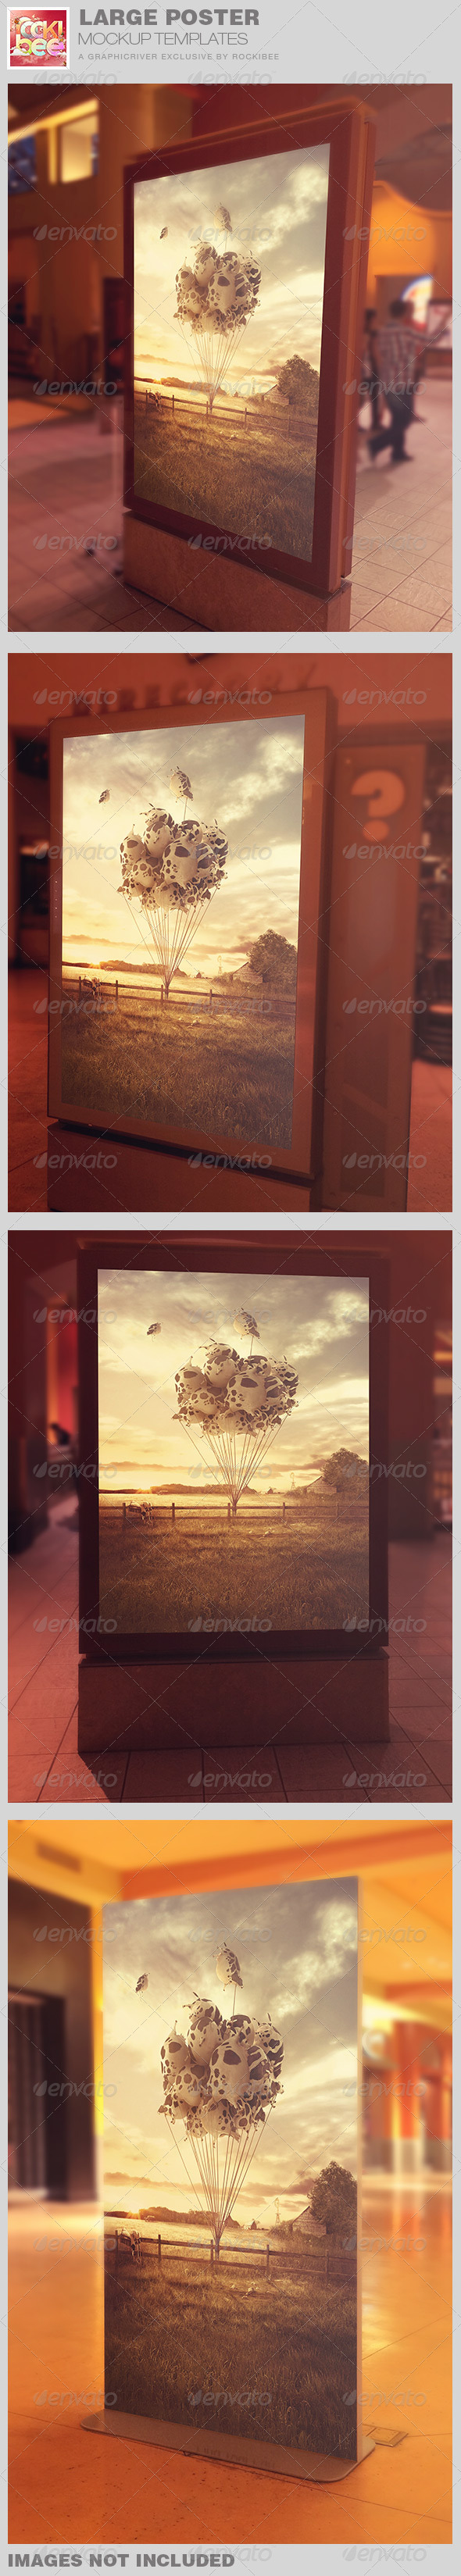 GraphicRiver Large Poster Mockup Templates 8147882